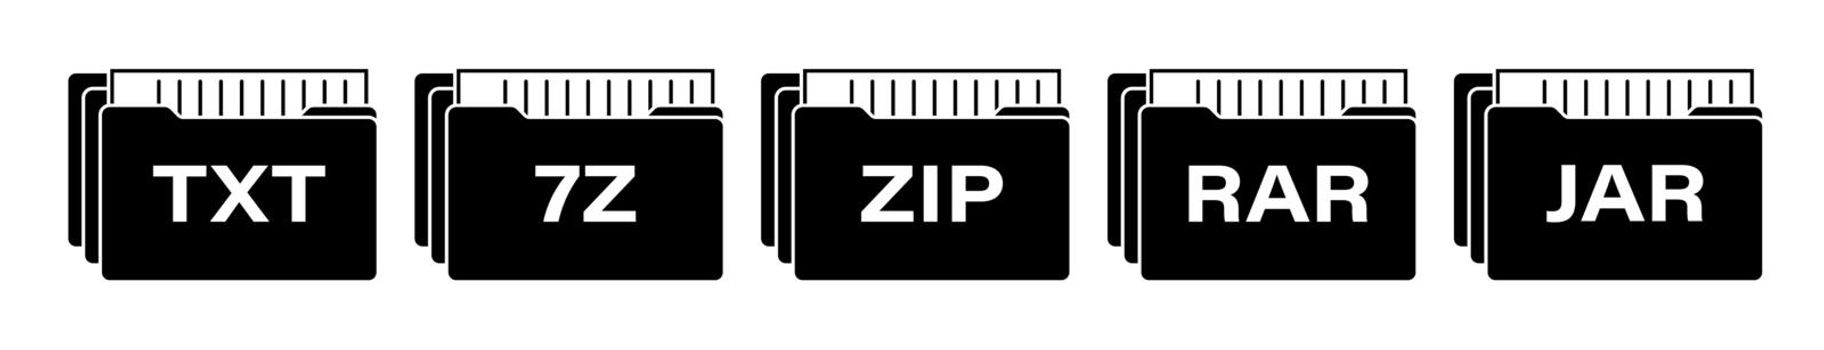 set of black icons of computer data archives with various extensions. Storage and sending large volumes of information on Internet. Isolated vector on white background